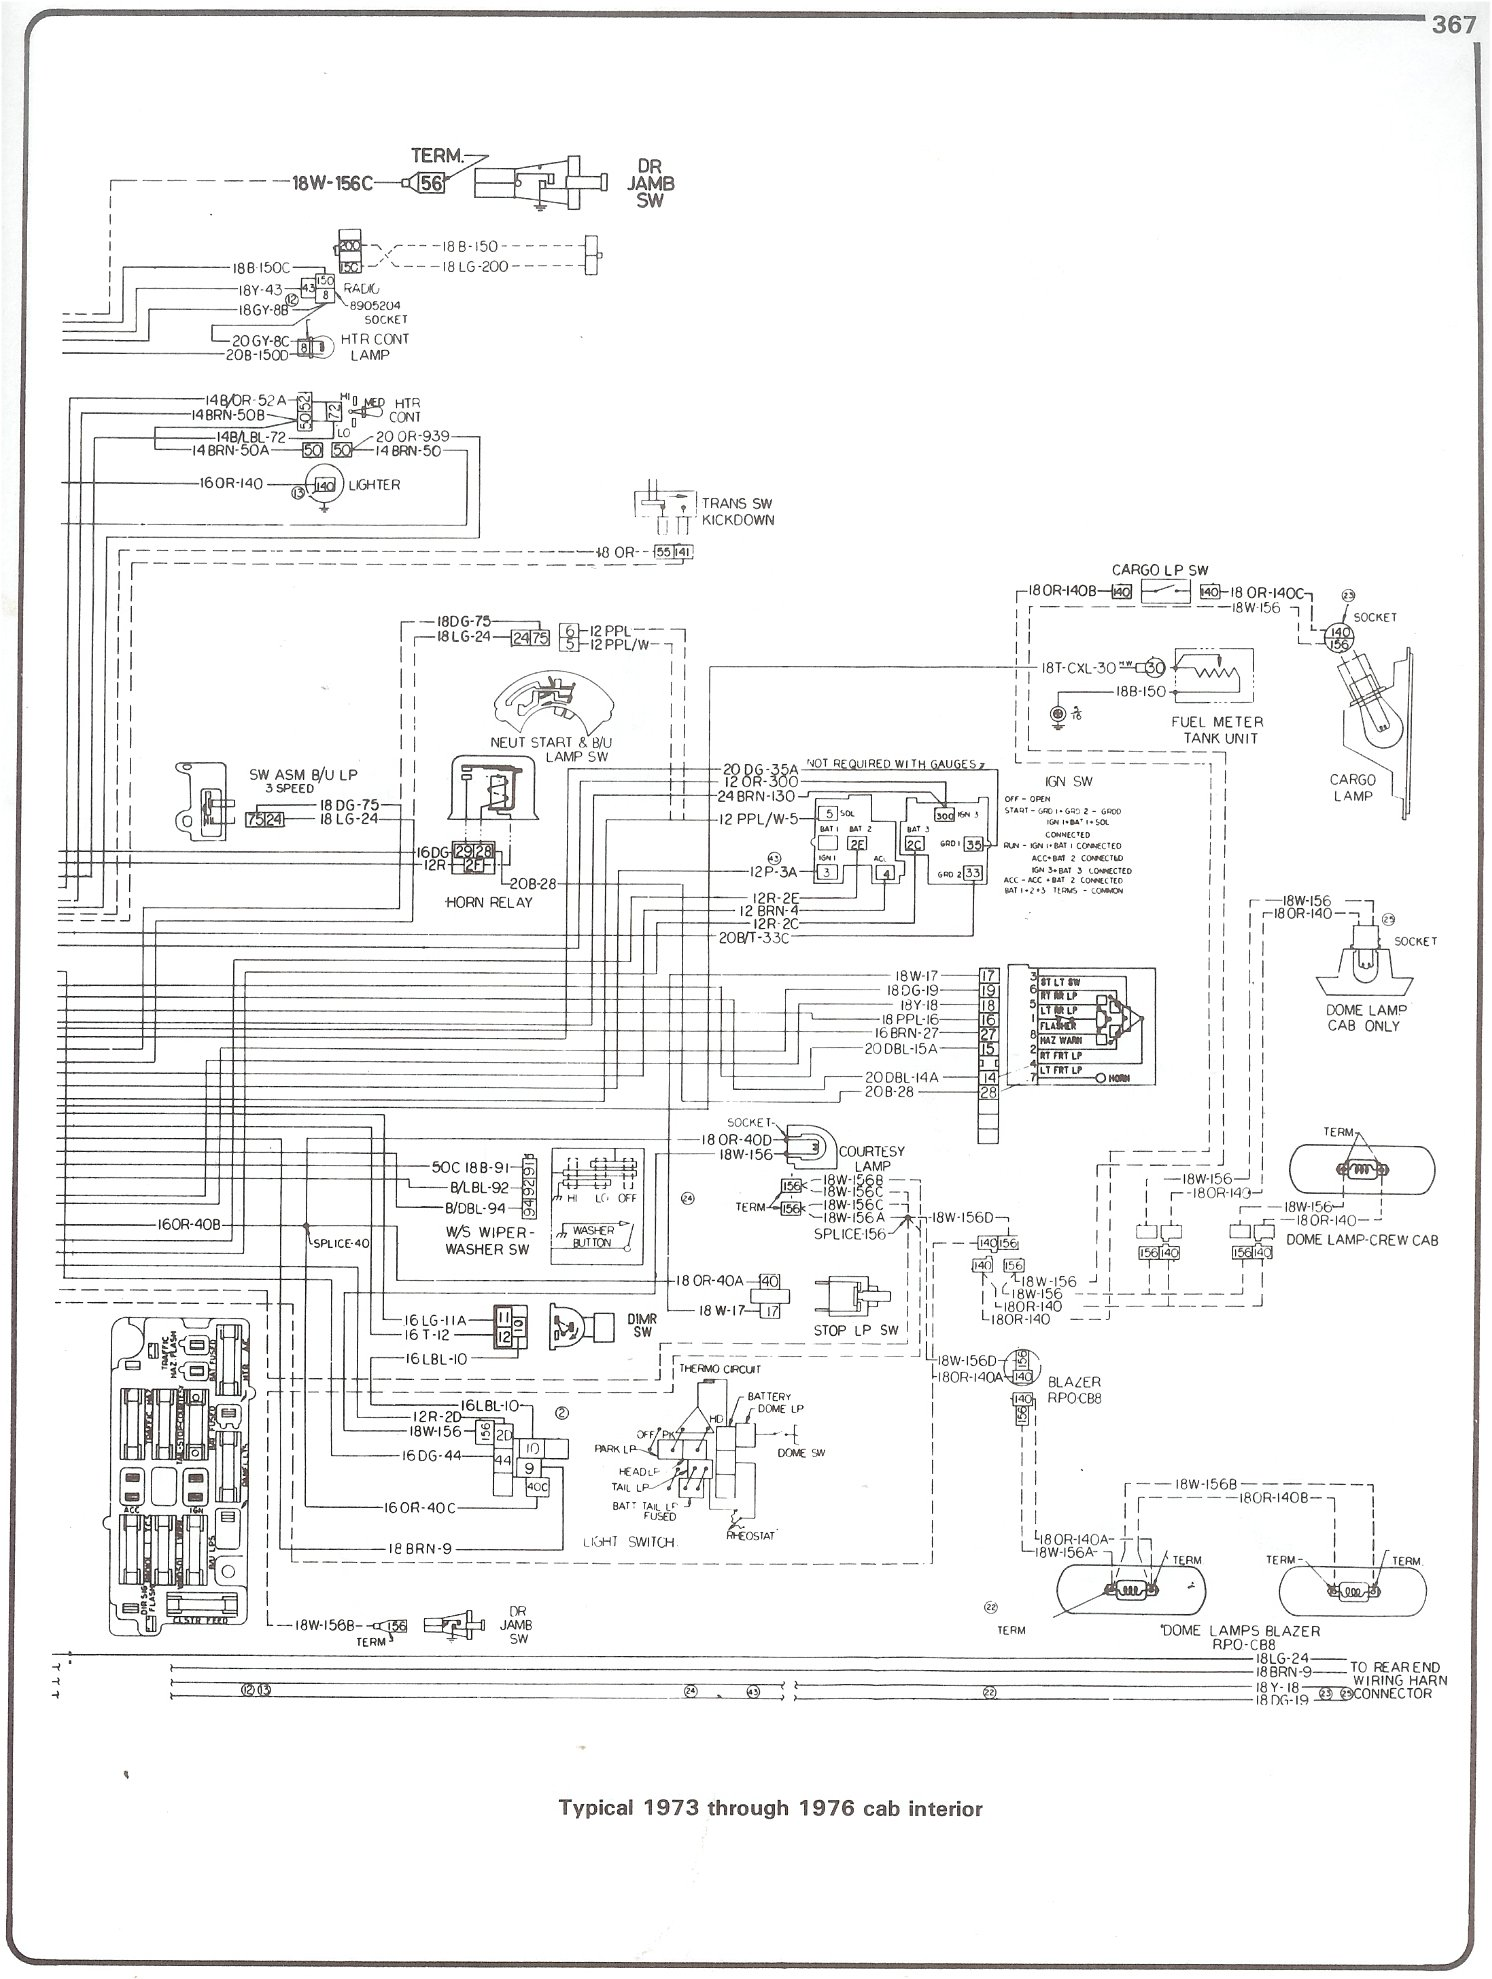 Complete 73 87 Wiring Diagrams Chevy Site 76 Cab Interior